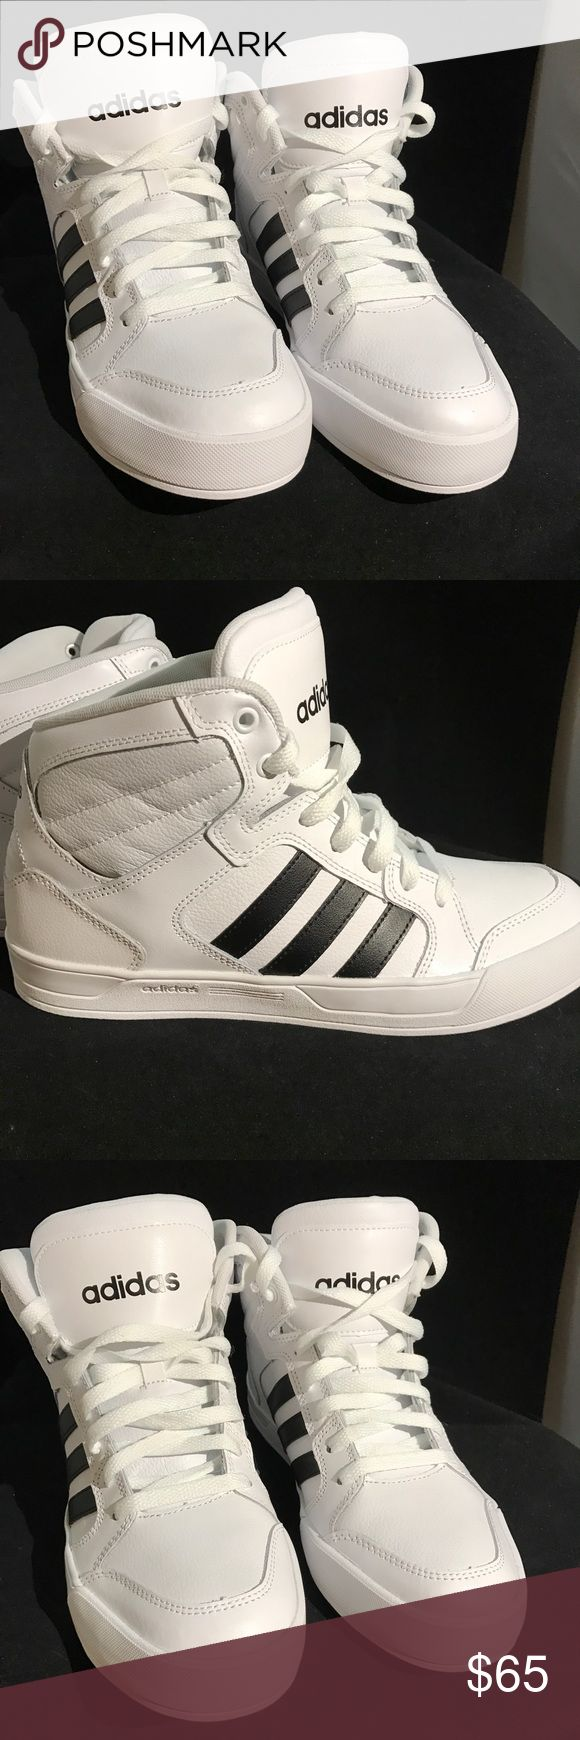 Adidas Mid Top Raleigh Sneaker Adidas Mid Top Raleigh Sneaker Brand New Never Worn Women's Size 9.5 No Box No Trades These girls' shoes re-create old-school basketball sneakers with a modern feel. They have a clean mid-cut hoops look with a padded collar and oversize tongue. Soft leather upper Comfortable textile lining Cushioning insole Mid cut Rubber outsole Adidas Shoes Sneakers